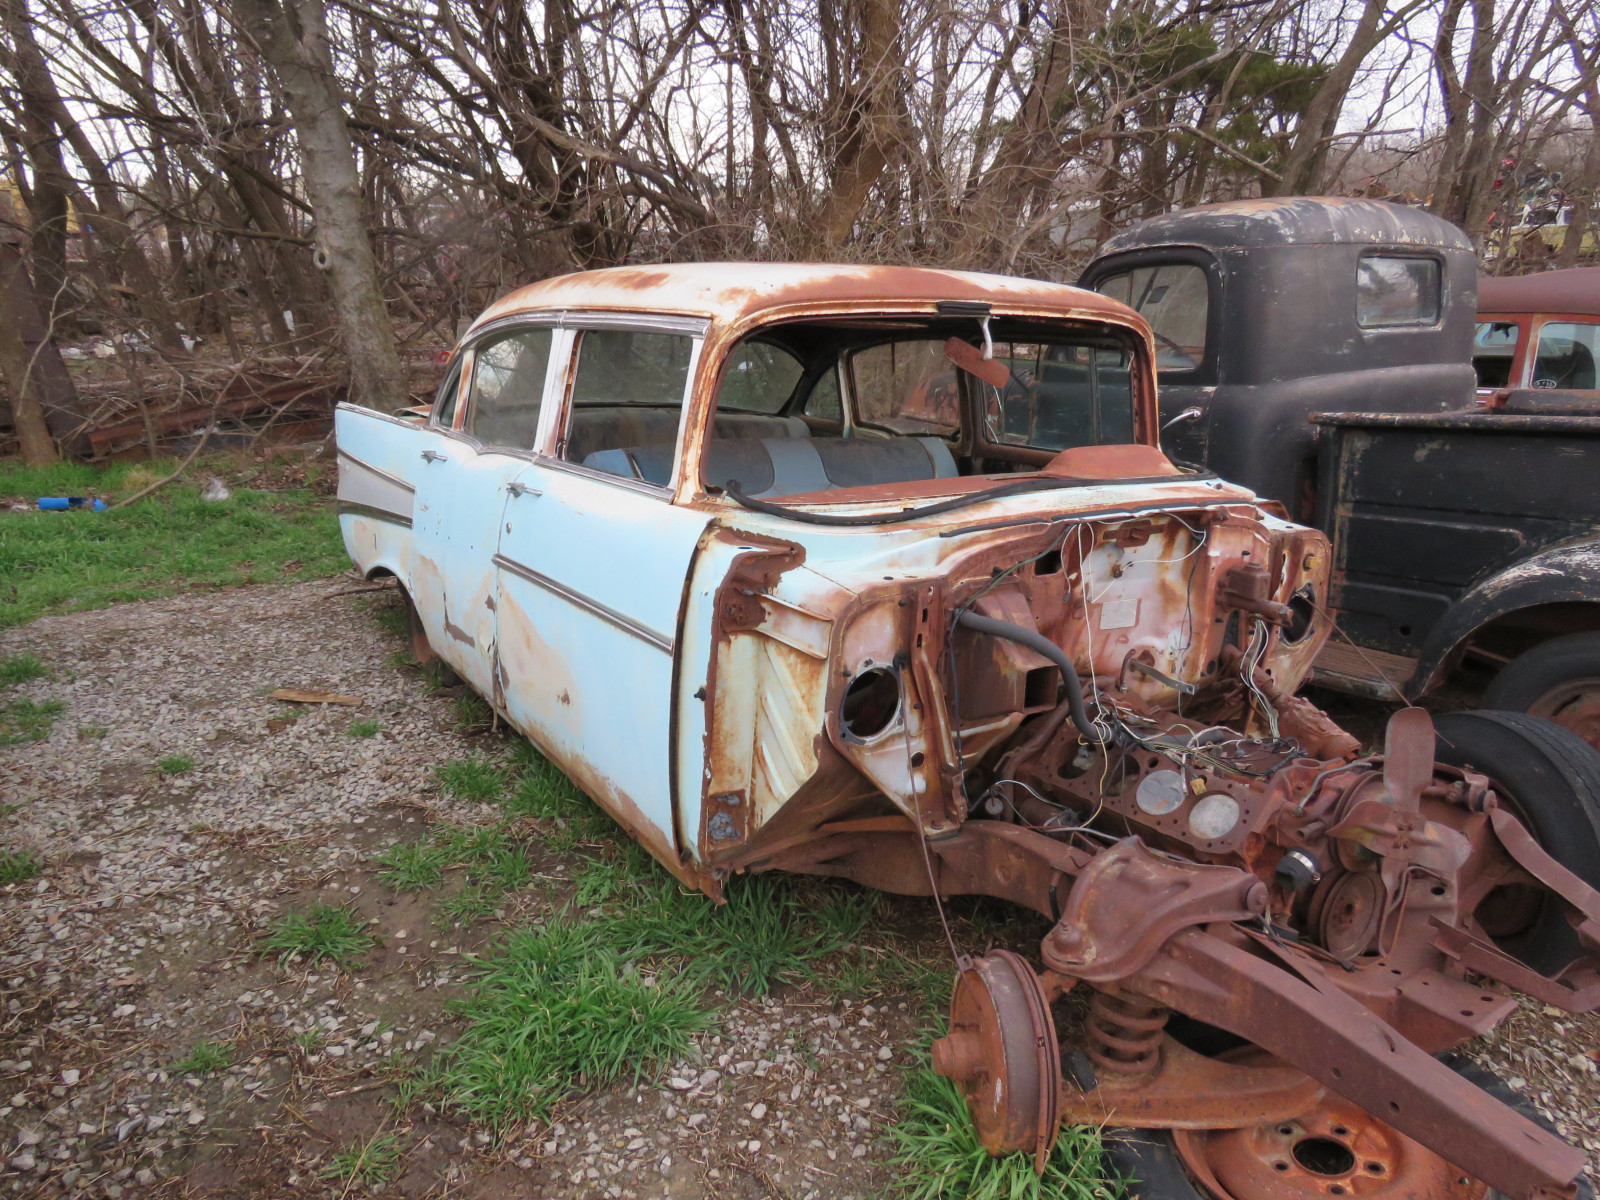 1957 Chevrolet 4dr Sedan for parts VC57K132159 - Image 2